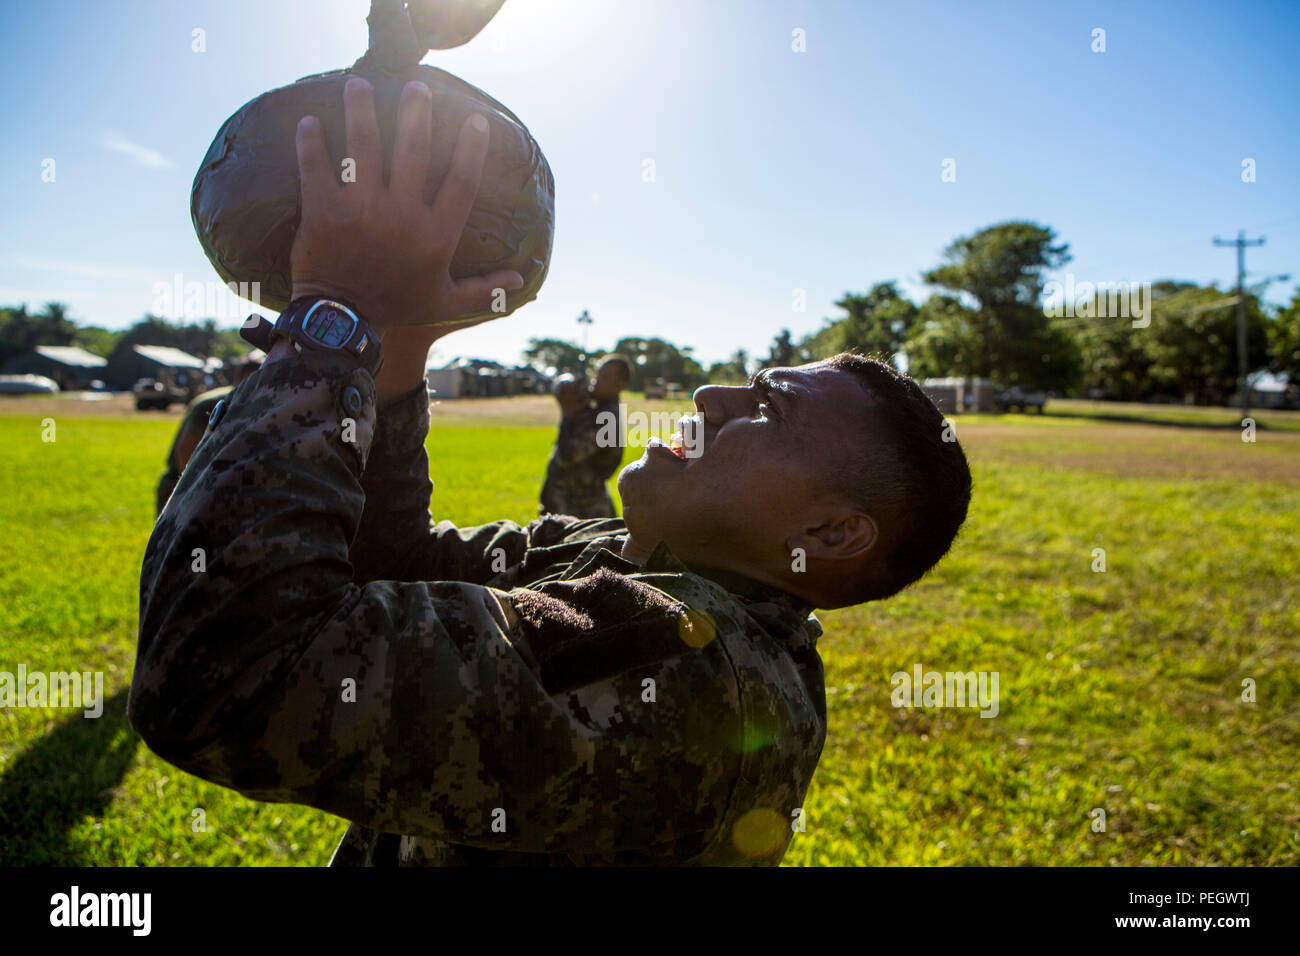 U.S. Marines with Security Cooperation Team-Honduras, Special Purpose Marine Air-Ground Task Force-Southern Command and Honduran marines participate in a physical training session at Naval Base Puerto Castilla, Honduras, Aug. 18, 2015. The session consisted of 200-meter sprints, sand bag presses, and culminated with a squad competition. SCT-Honduras is currently deployed as part of the SPMAGTF-SC to assist the Centro de Adiestramiento Naval with implementing a training curriculum to create a Honduran marine Program. (U.S. Marine Corps Photo by Cpl. Katelyn Hunter/Released) - Stock Image